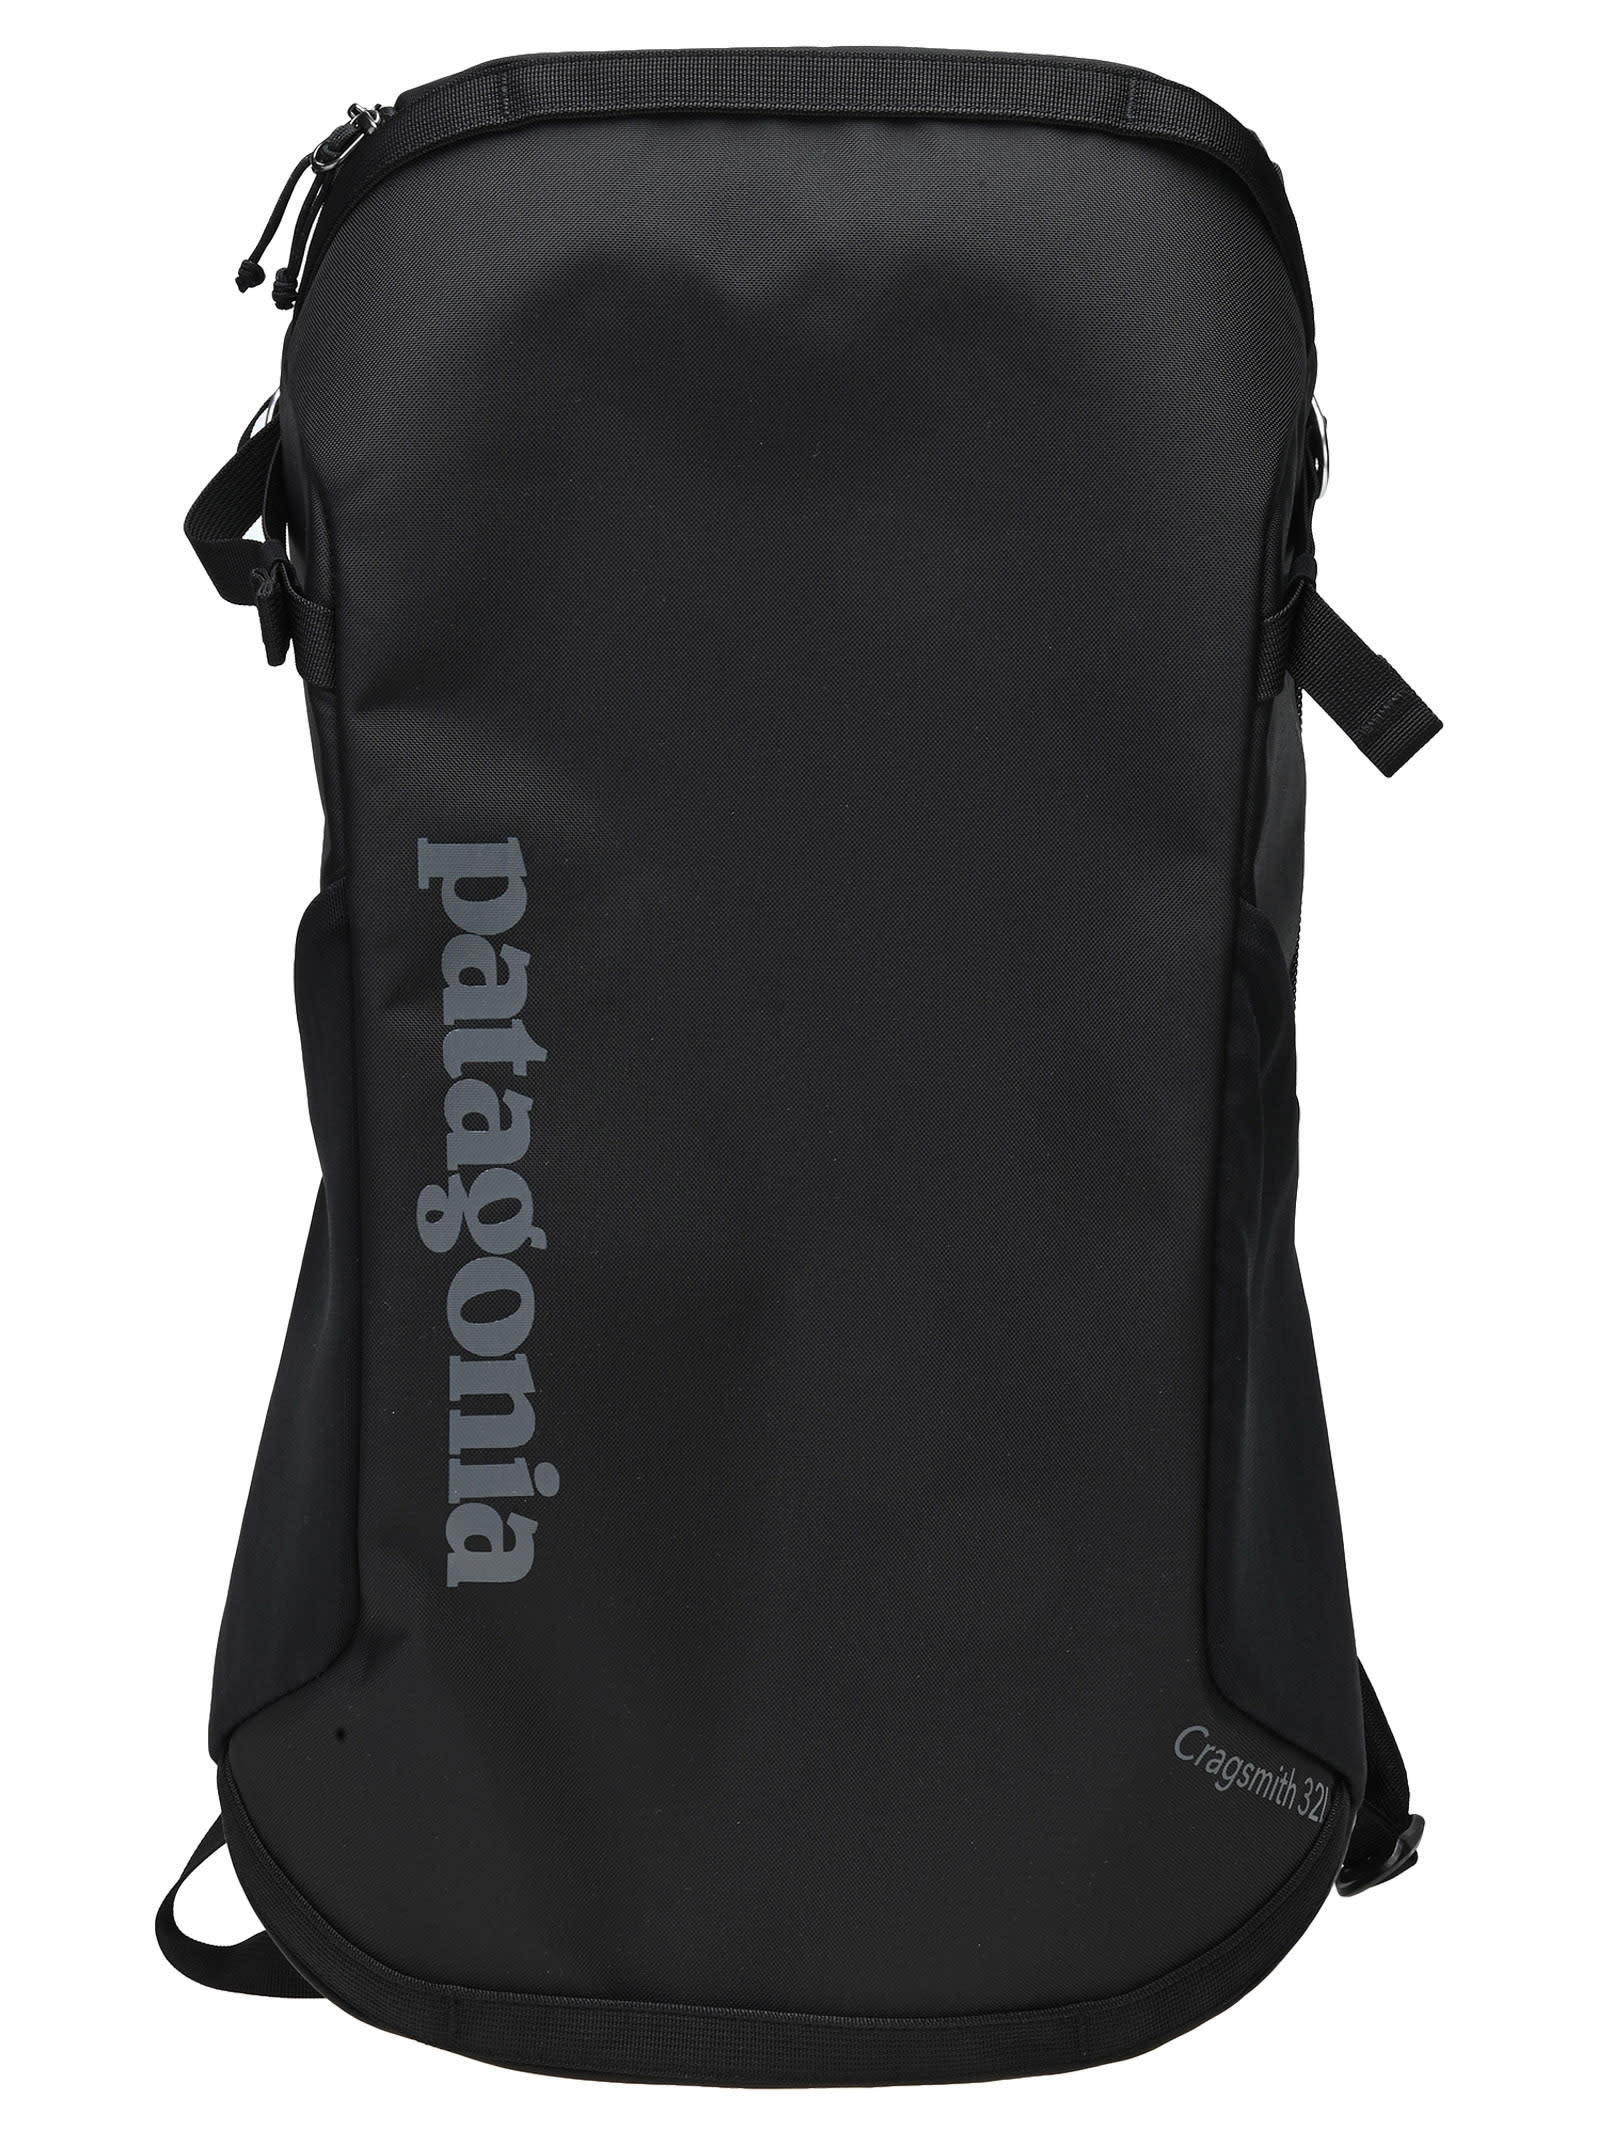 Black Logo Backpack By Patagonia Featuring: - Squared Shape - Adjustable Shoulder Straps - All-around Zip Fastening - Logo Printed On The Front - Multiple Zip-fastening PocketsComposition: 100% NYLON